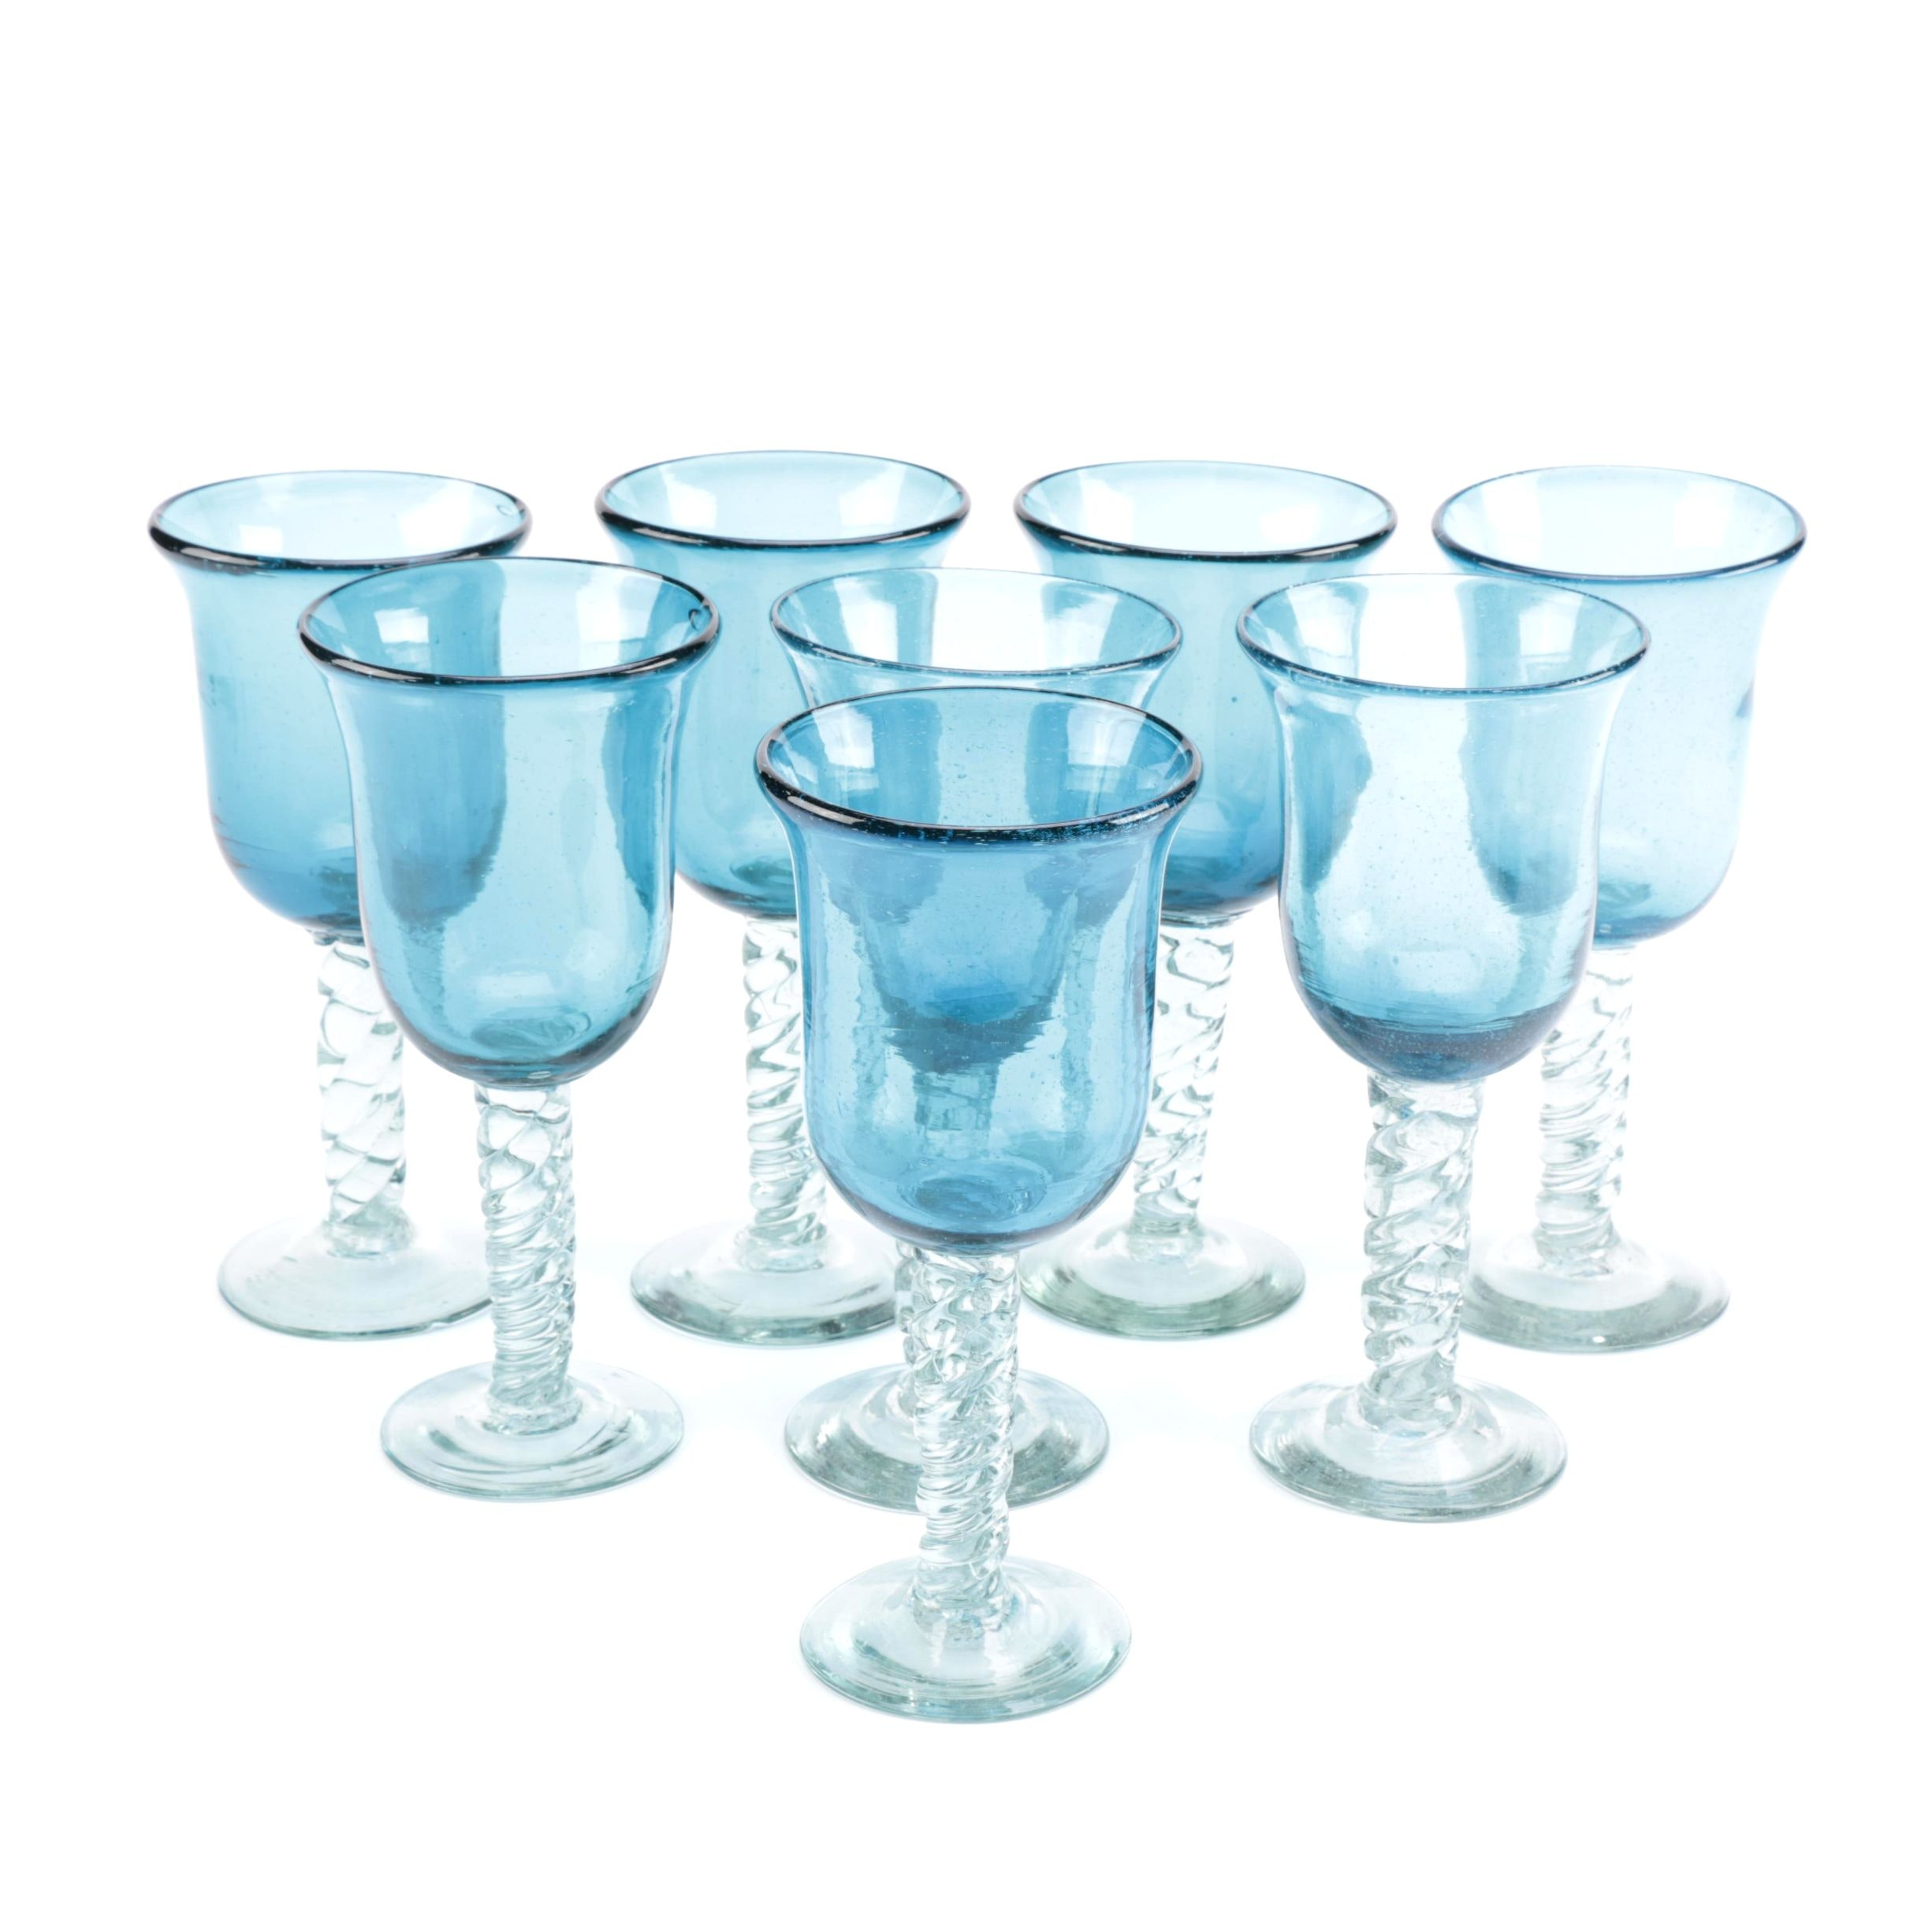 Eight Wine Glasses With Blue Bowls